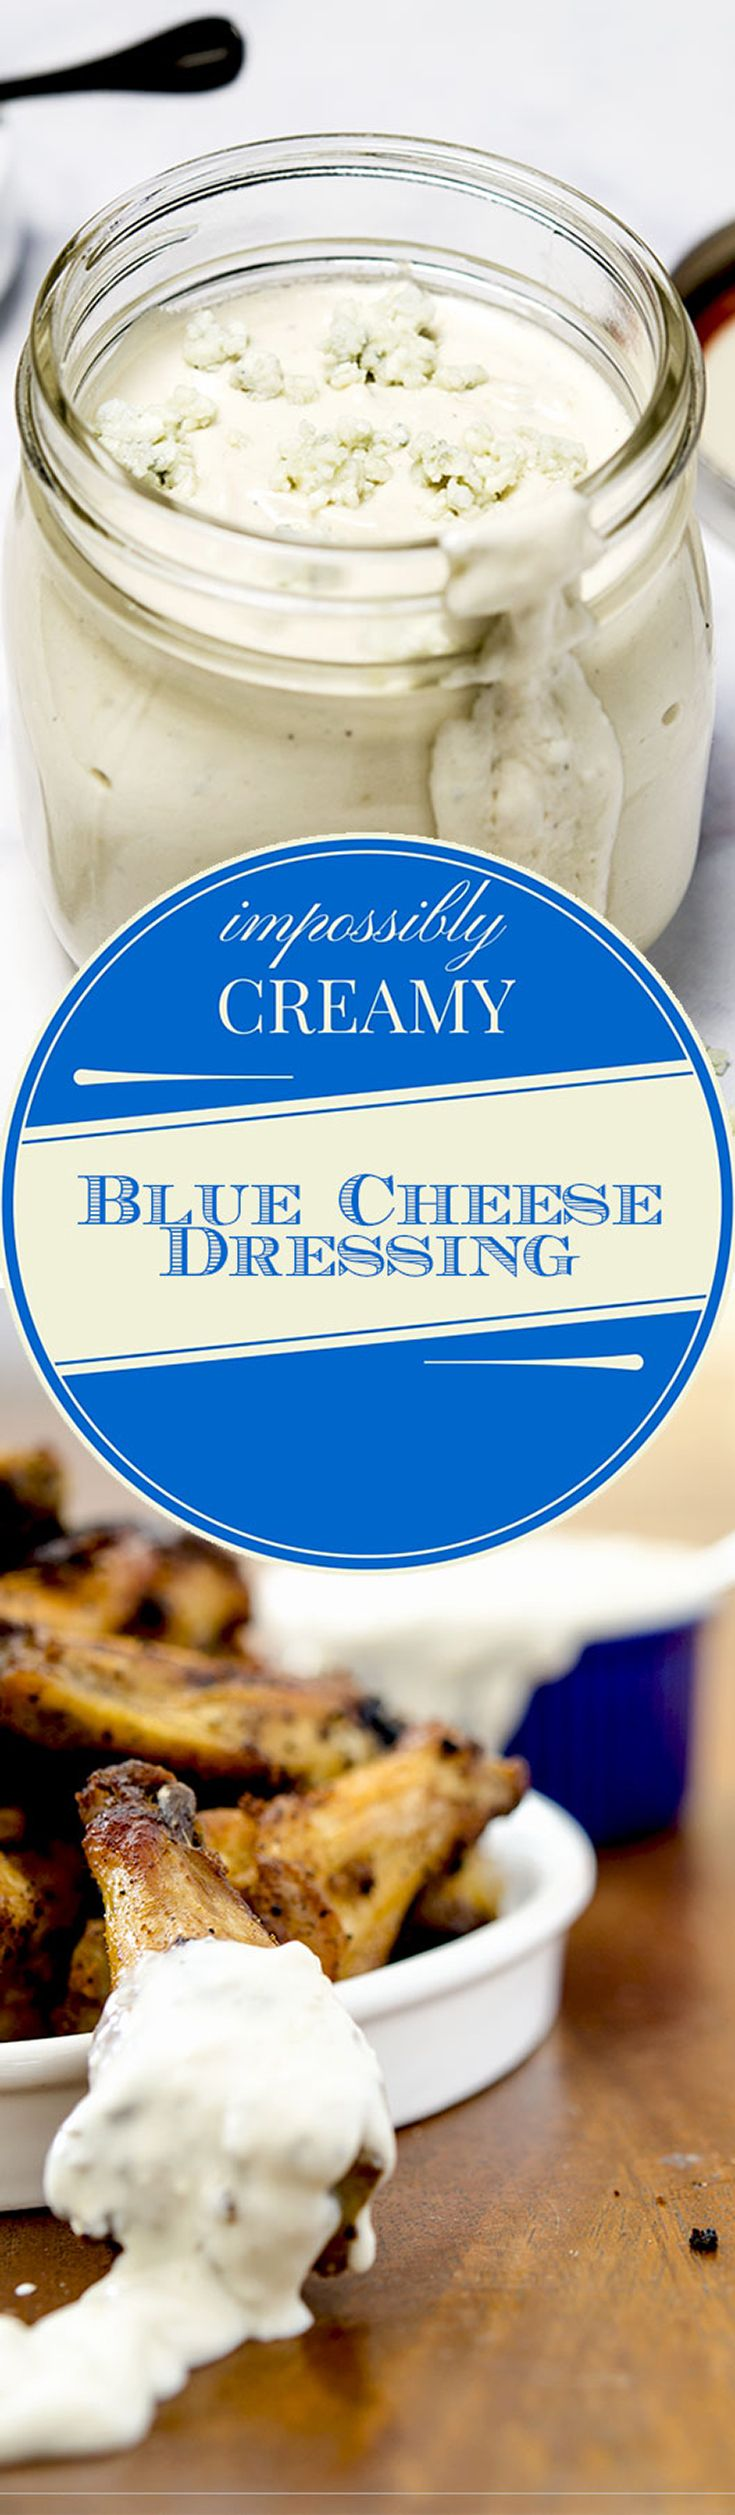 Creamy, tangy and impossibly luscious… You'll use this homemade blue cheese dressing on salads, as a steak topping or as a dip for wings, veggies and more.